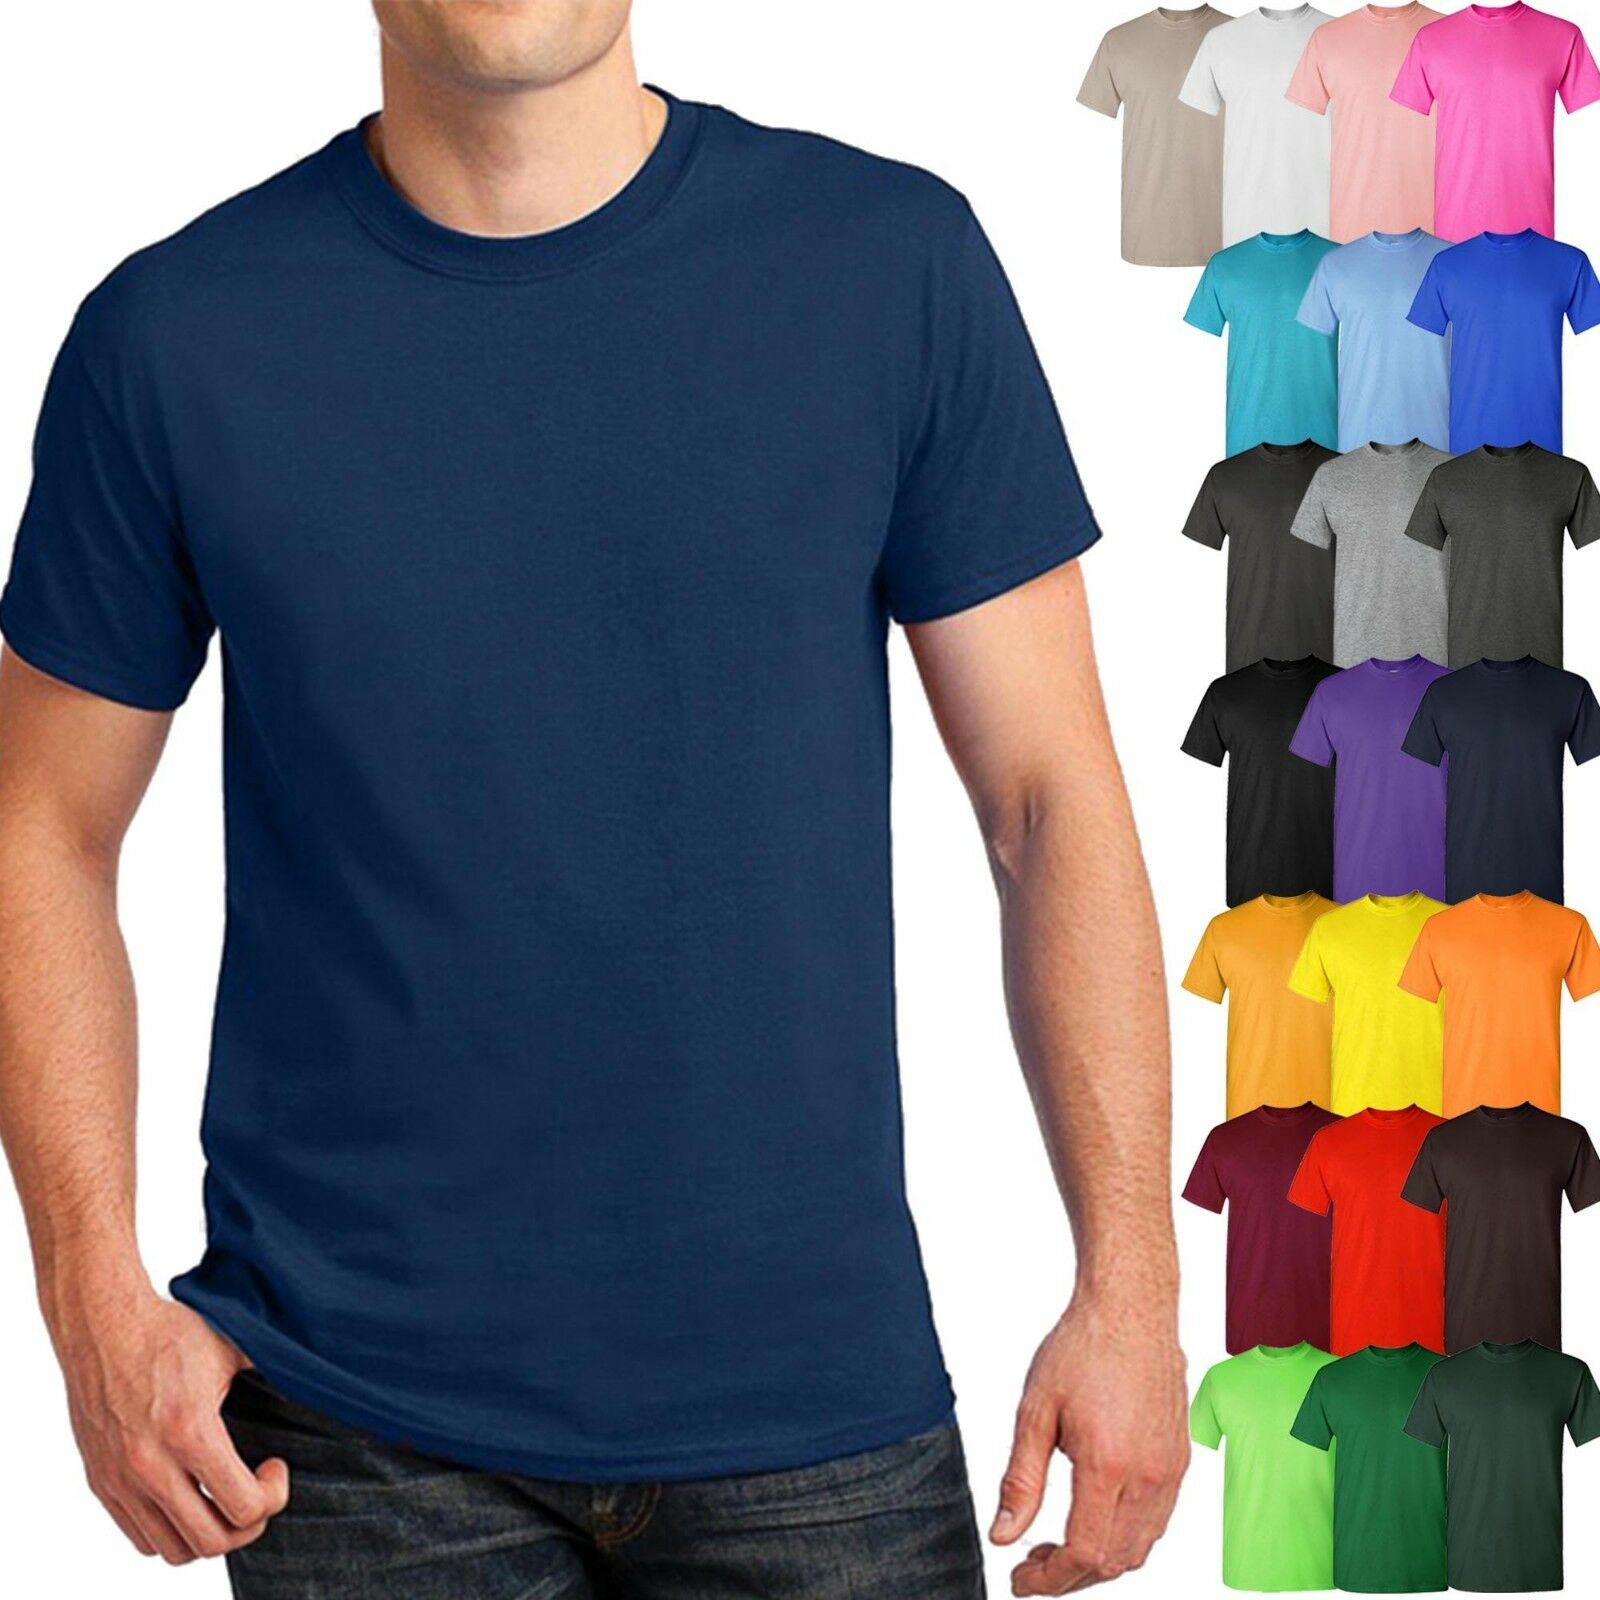 Mens Basic T Shirts Solid CREW NECK Soft Cotton Tee Plain Ca